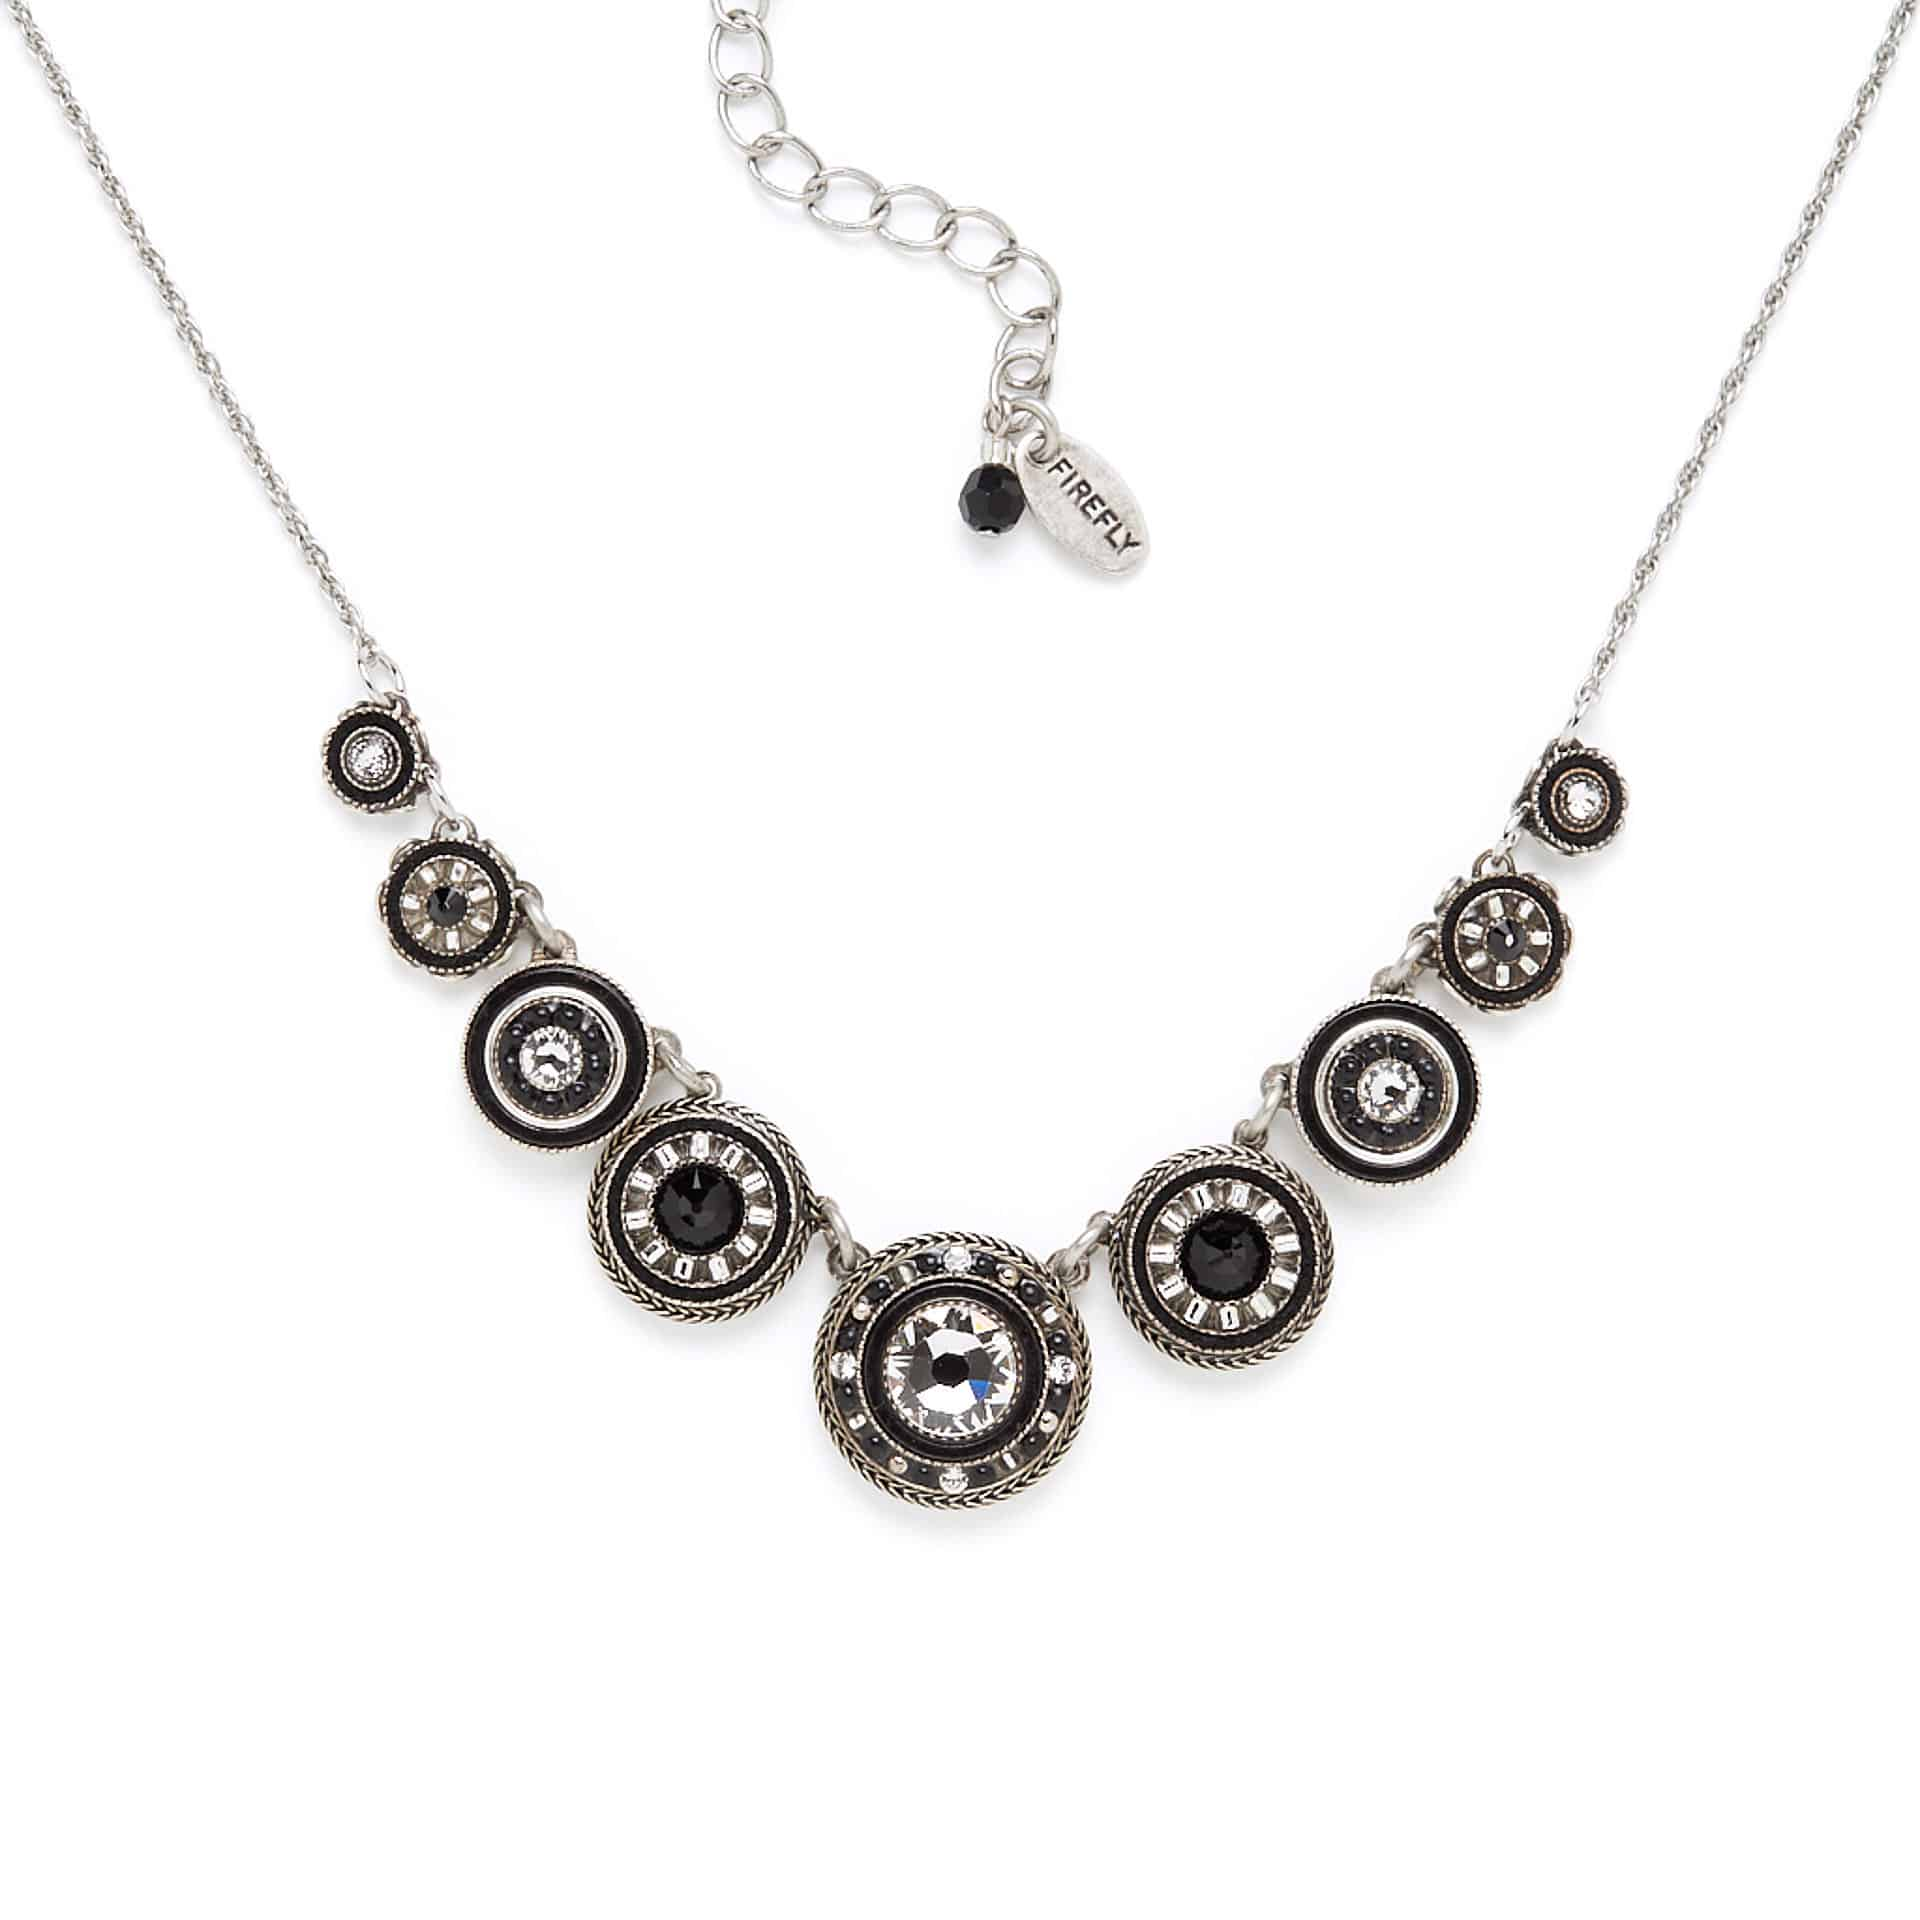 Black and white Firefly necklace